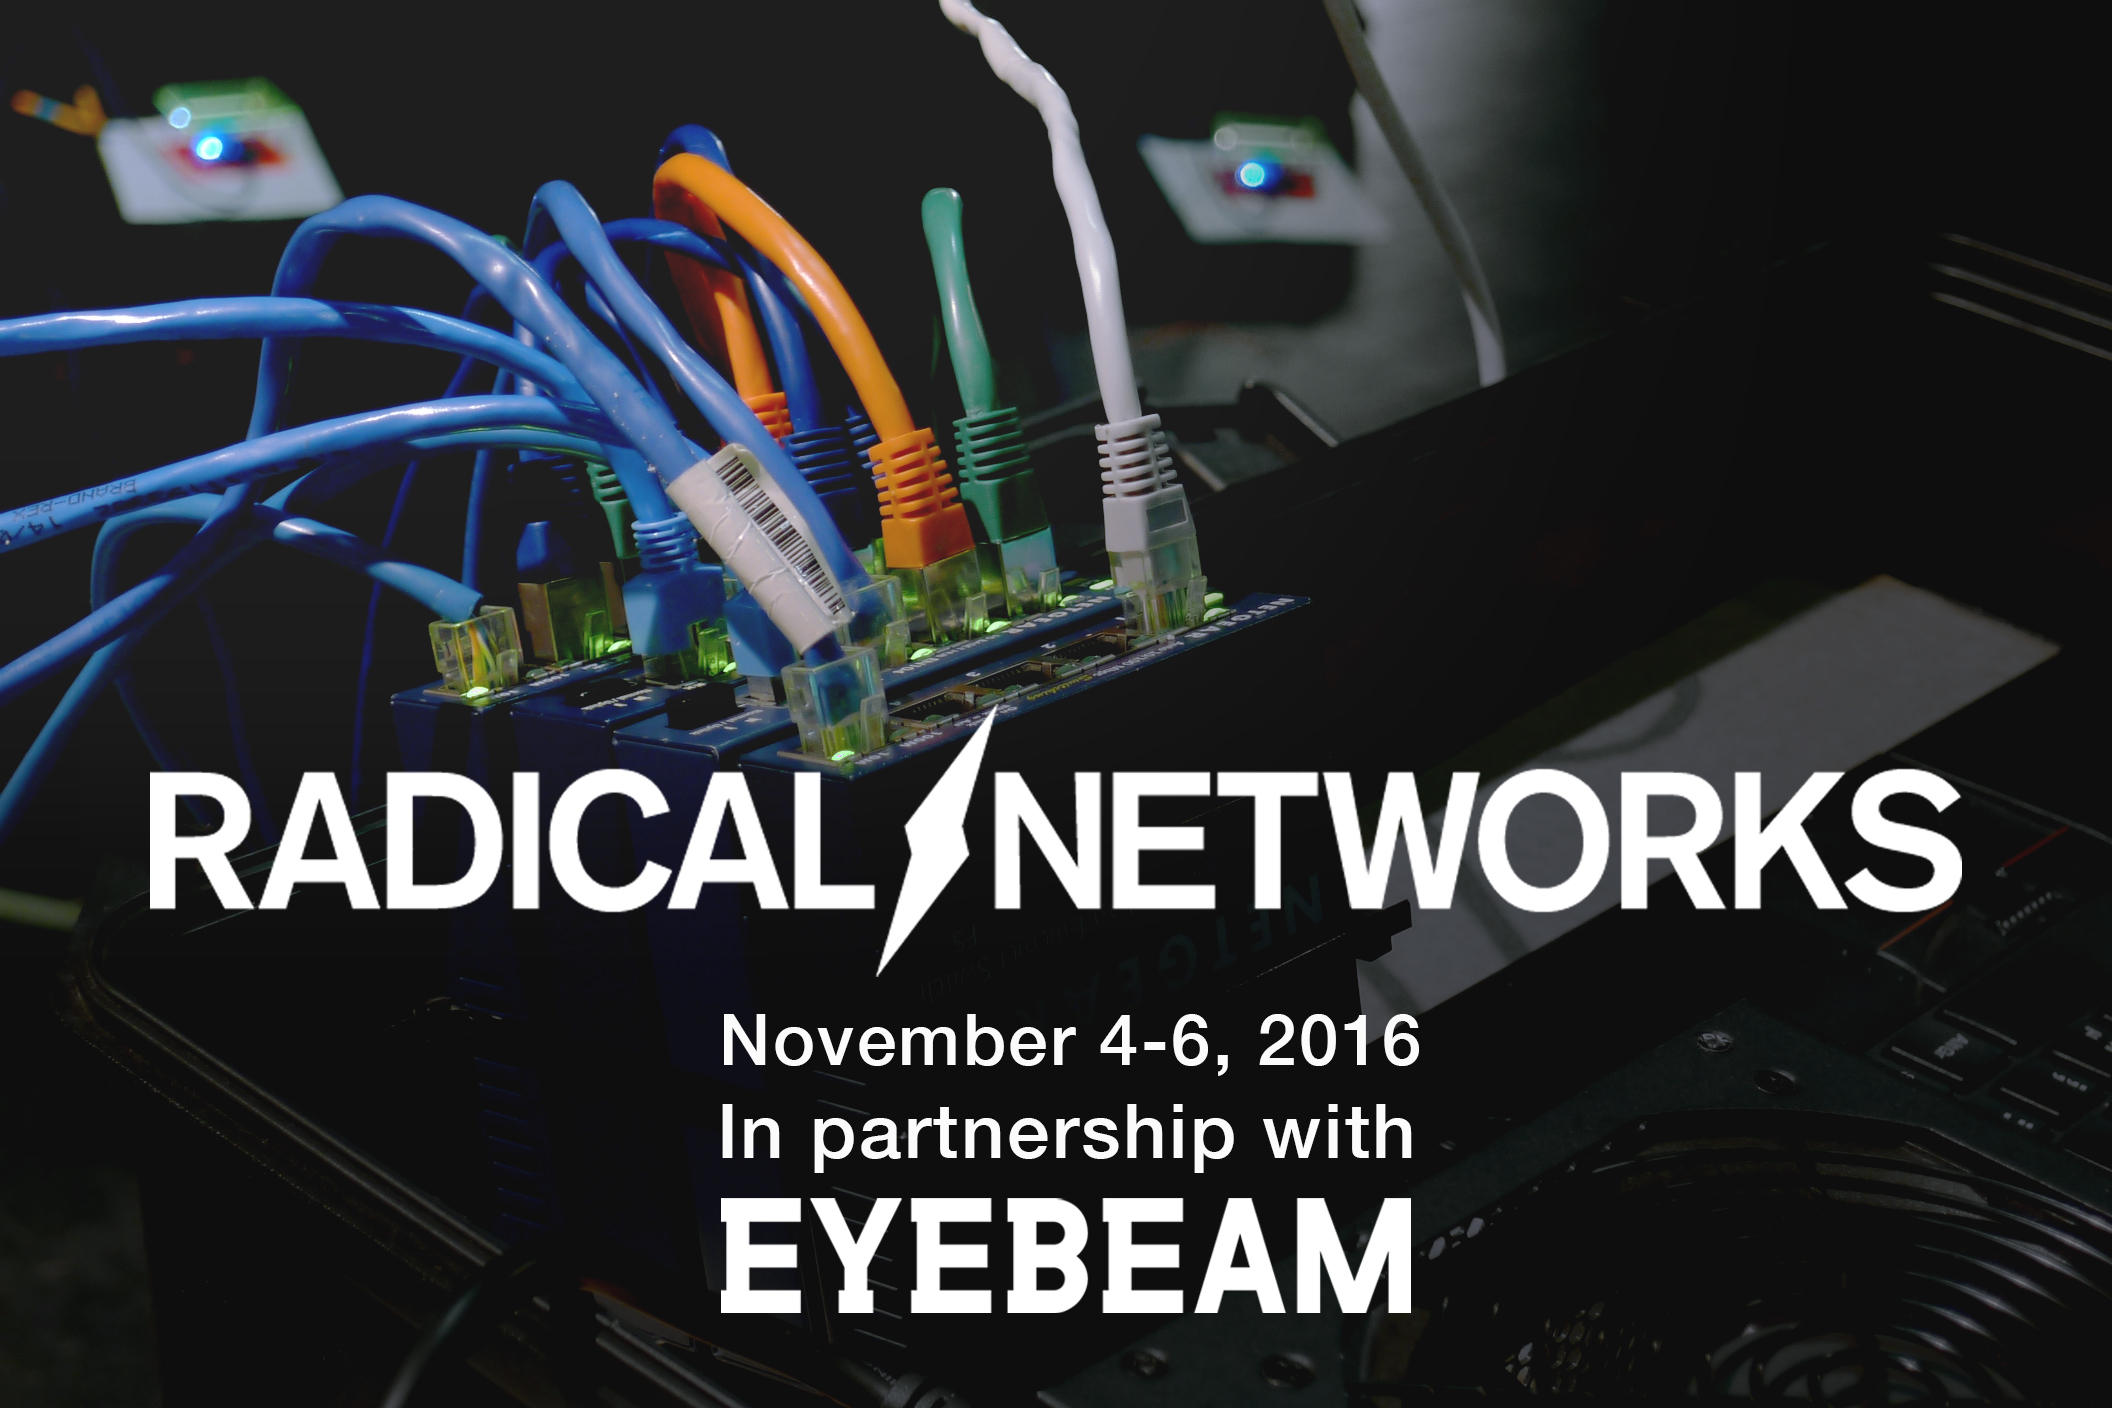 Radical Networks — Conference on DIY Networking